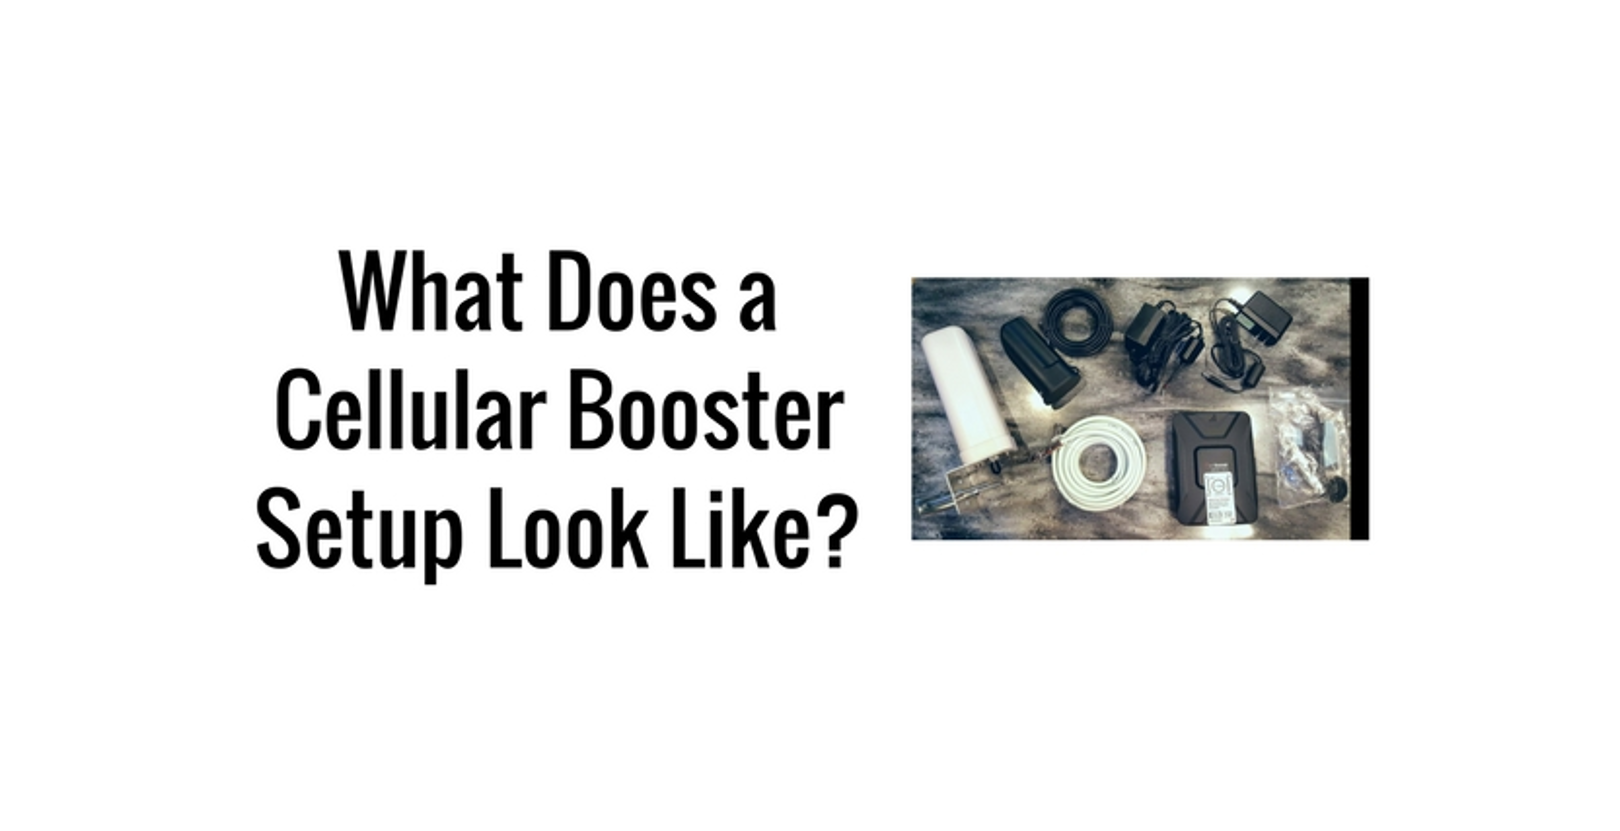 What Does a Cell Booster Setup Look Like?